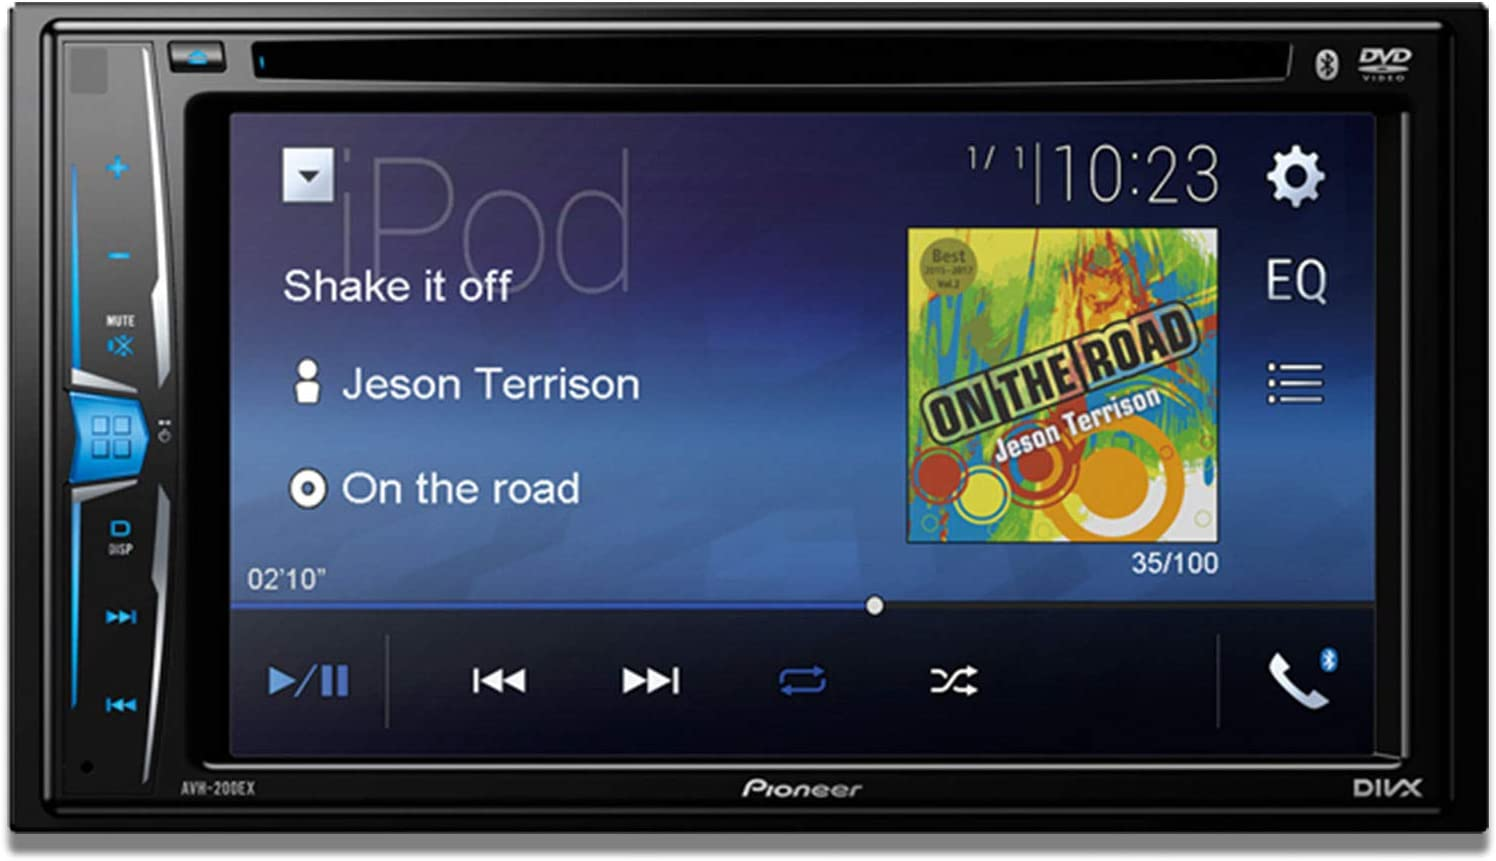 Pioneer AVH-200EX Multimedia DVD Receiver with 6.2 WVGA Display, and Built-in Bluetooth